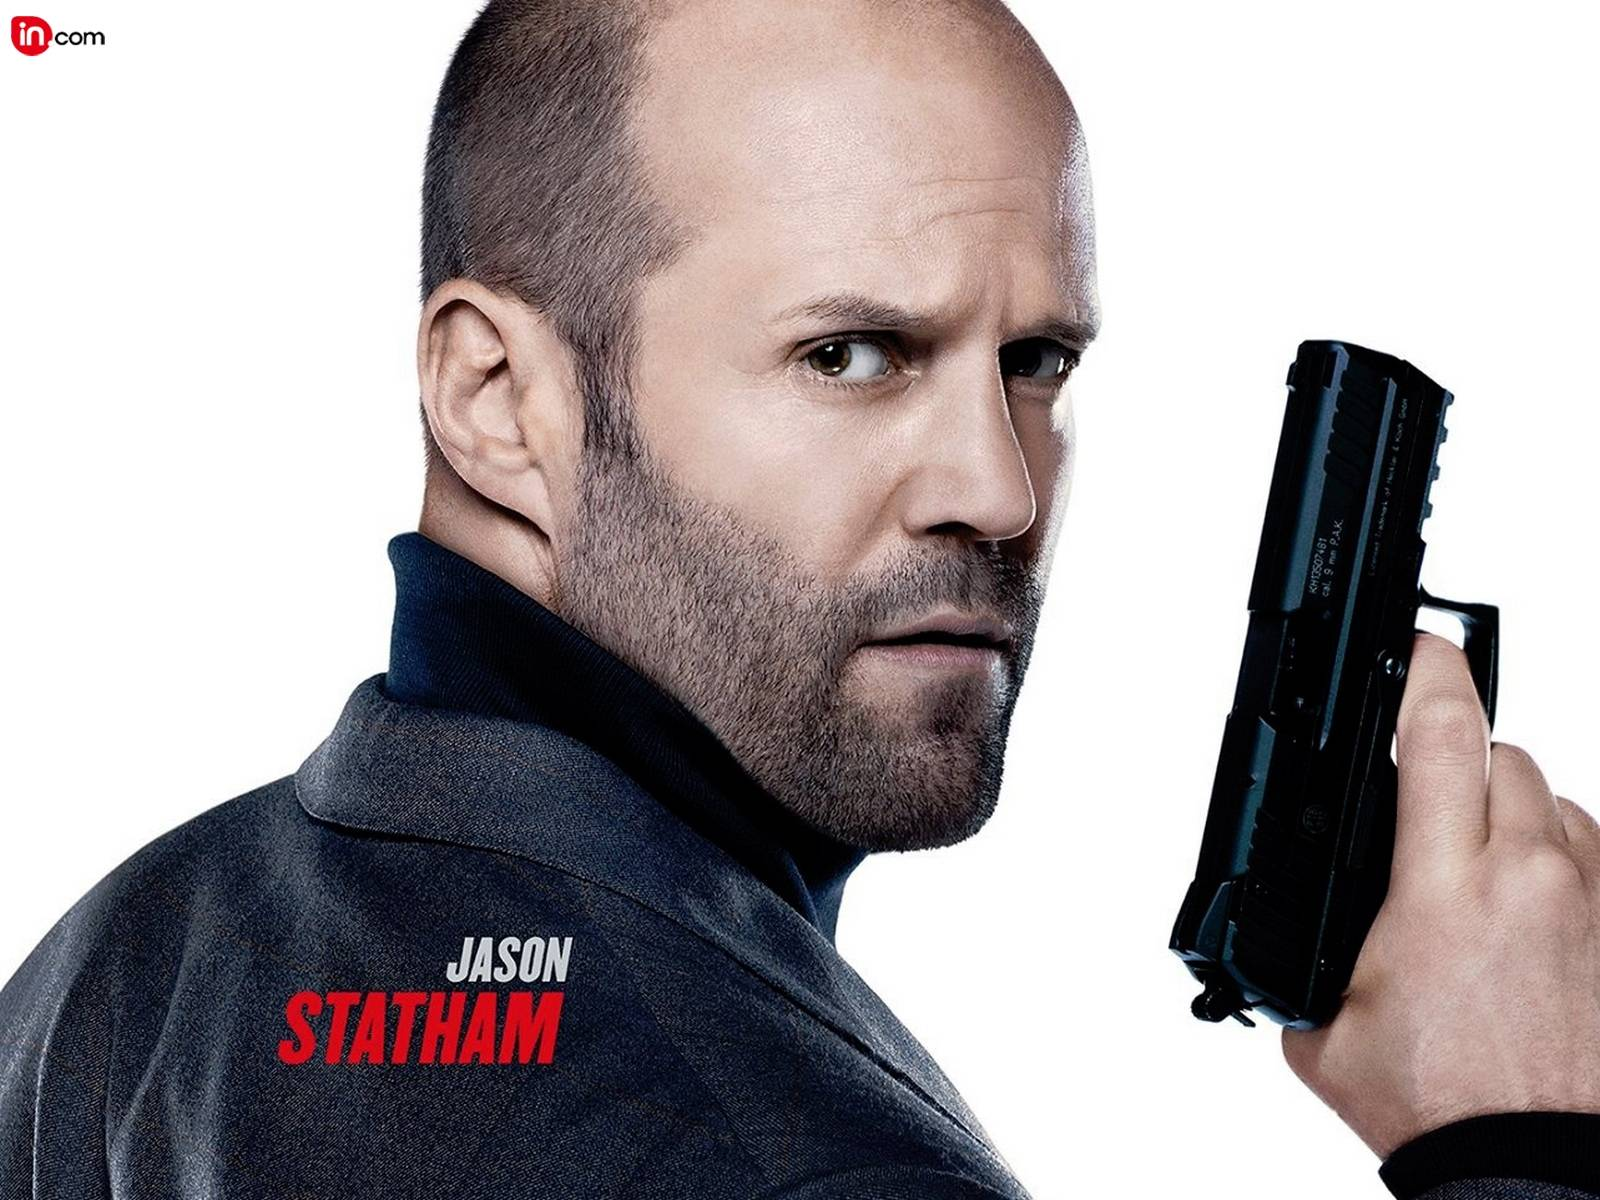 jason statham best awesome and fabulous images hd wallpapers 1600x1200 1600x1200